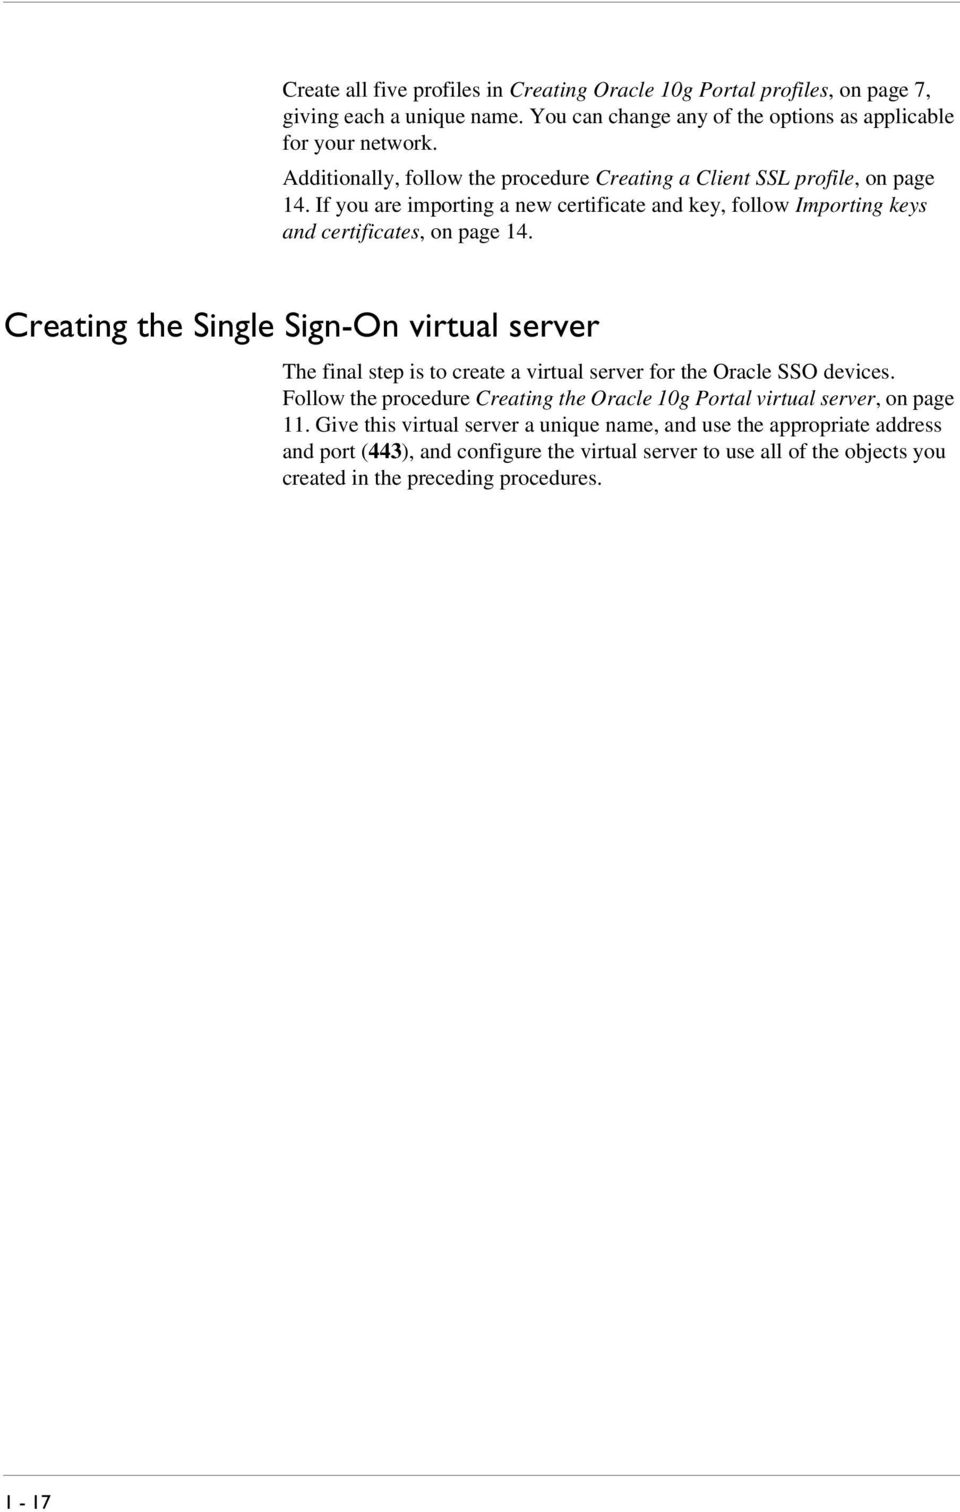 Creating the Single Sign-On virtual server The final step is to create a virtual server for the Oracle SSO devices.